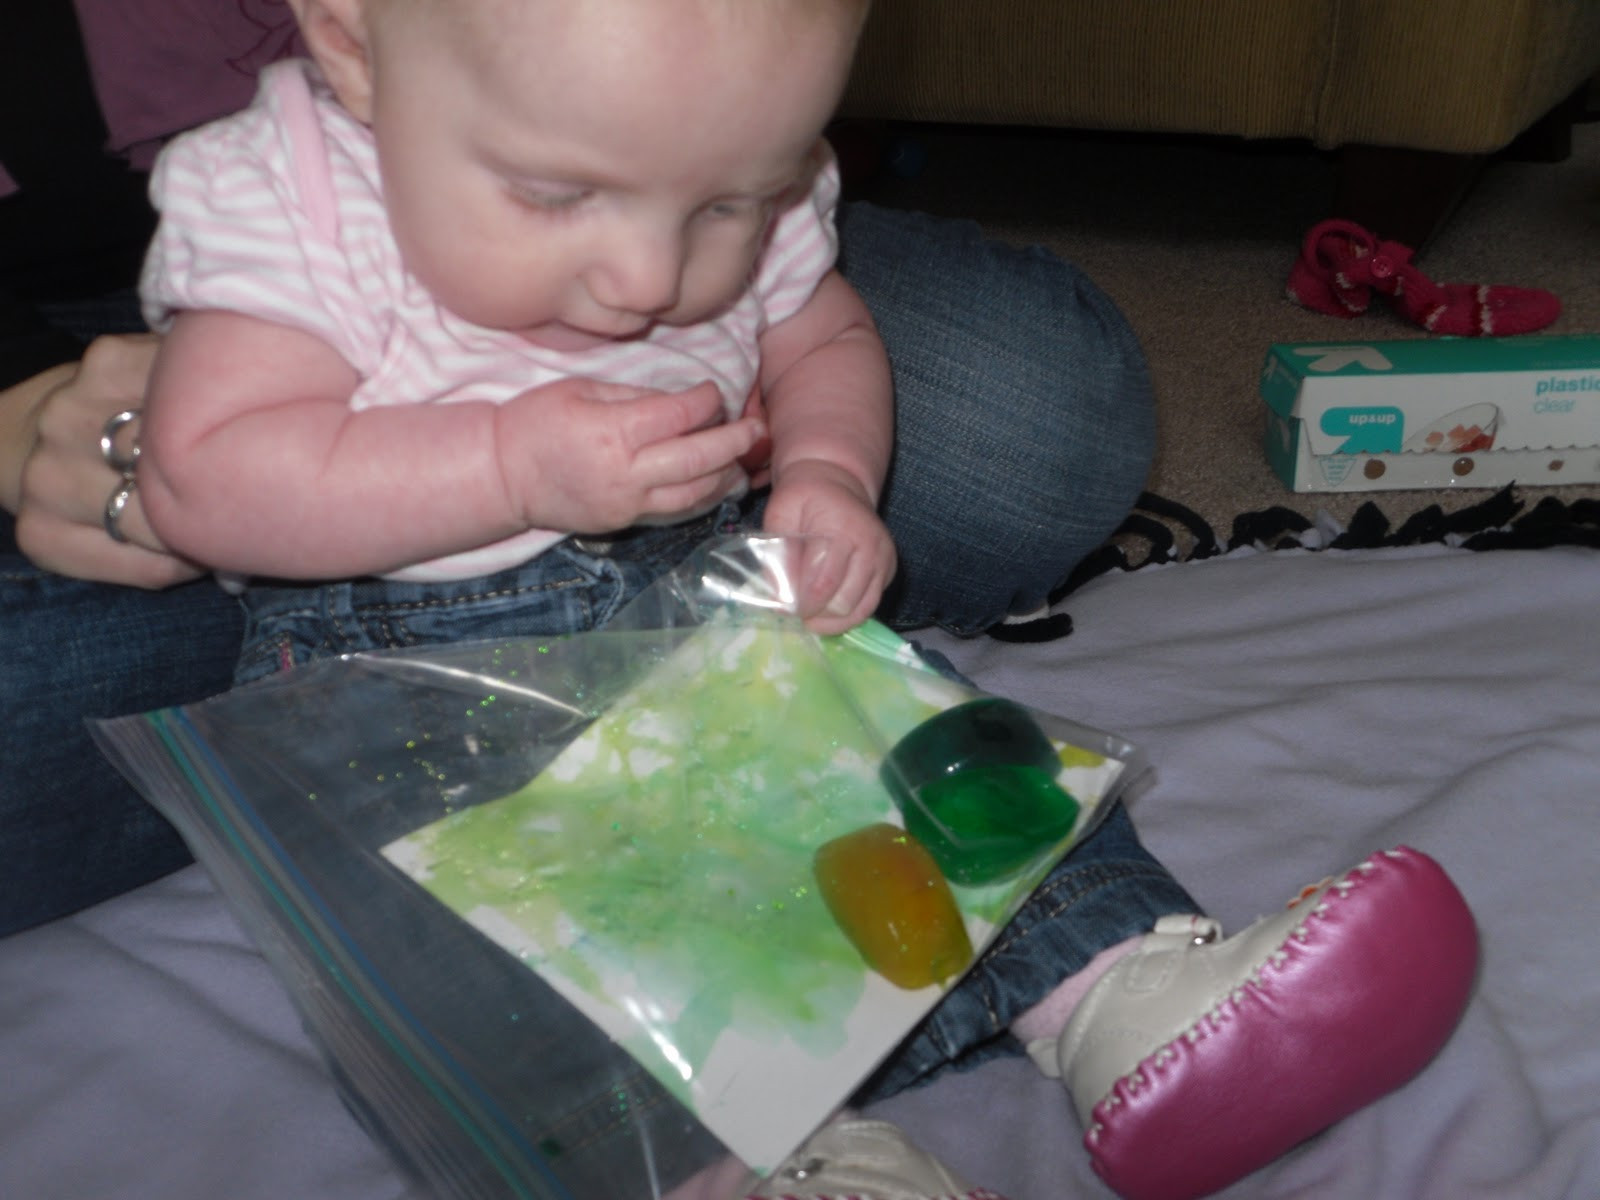 Best ideas about Babies Crafts Ideas . Save or Pin Paint and Prozac Babies CAN do crafts Now.